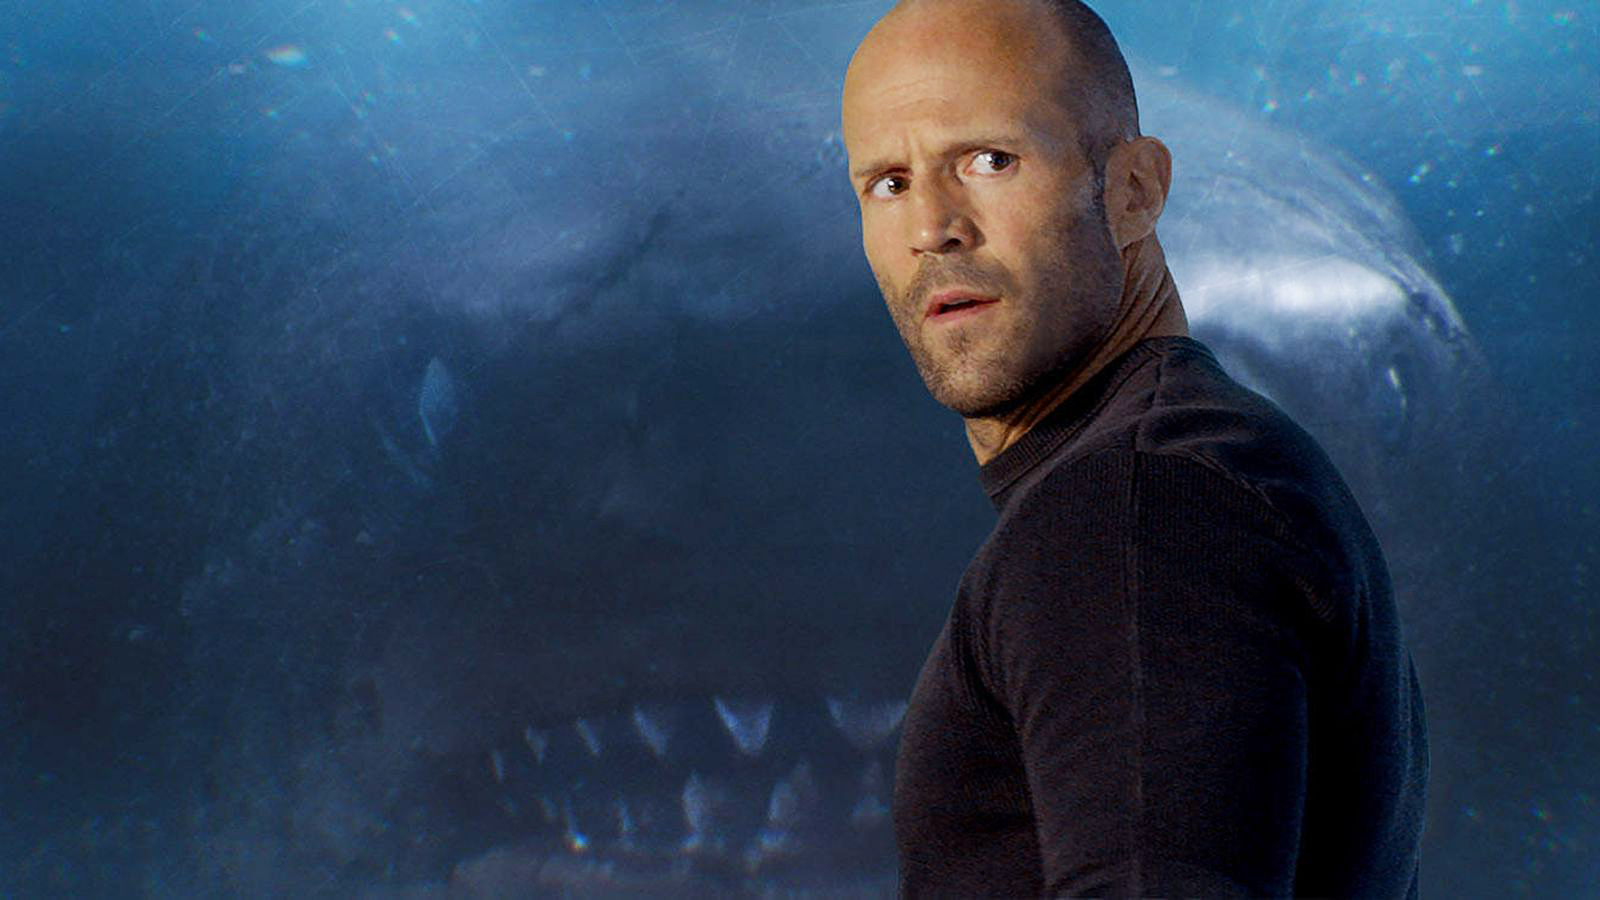 10 Best Shark Movies of All Time From Jaws to The Meg